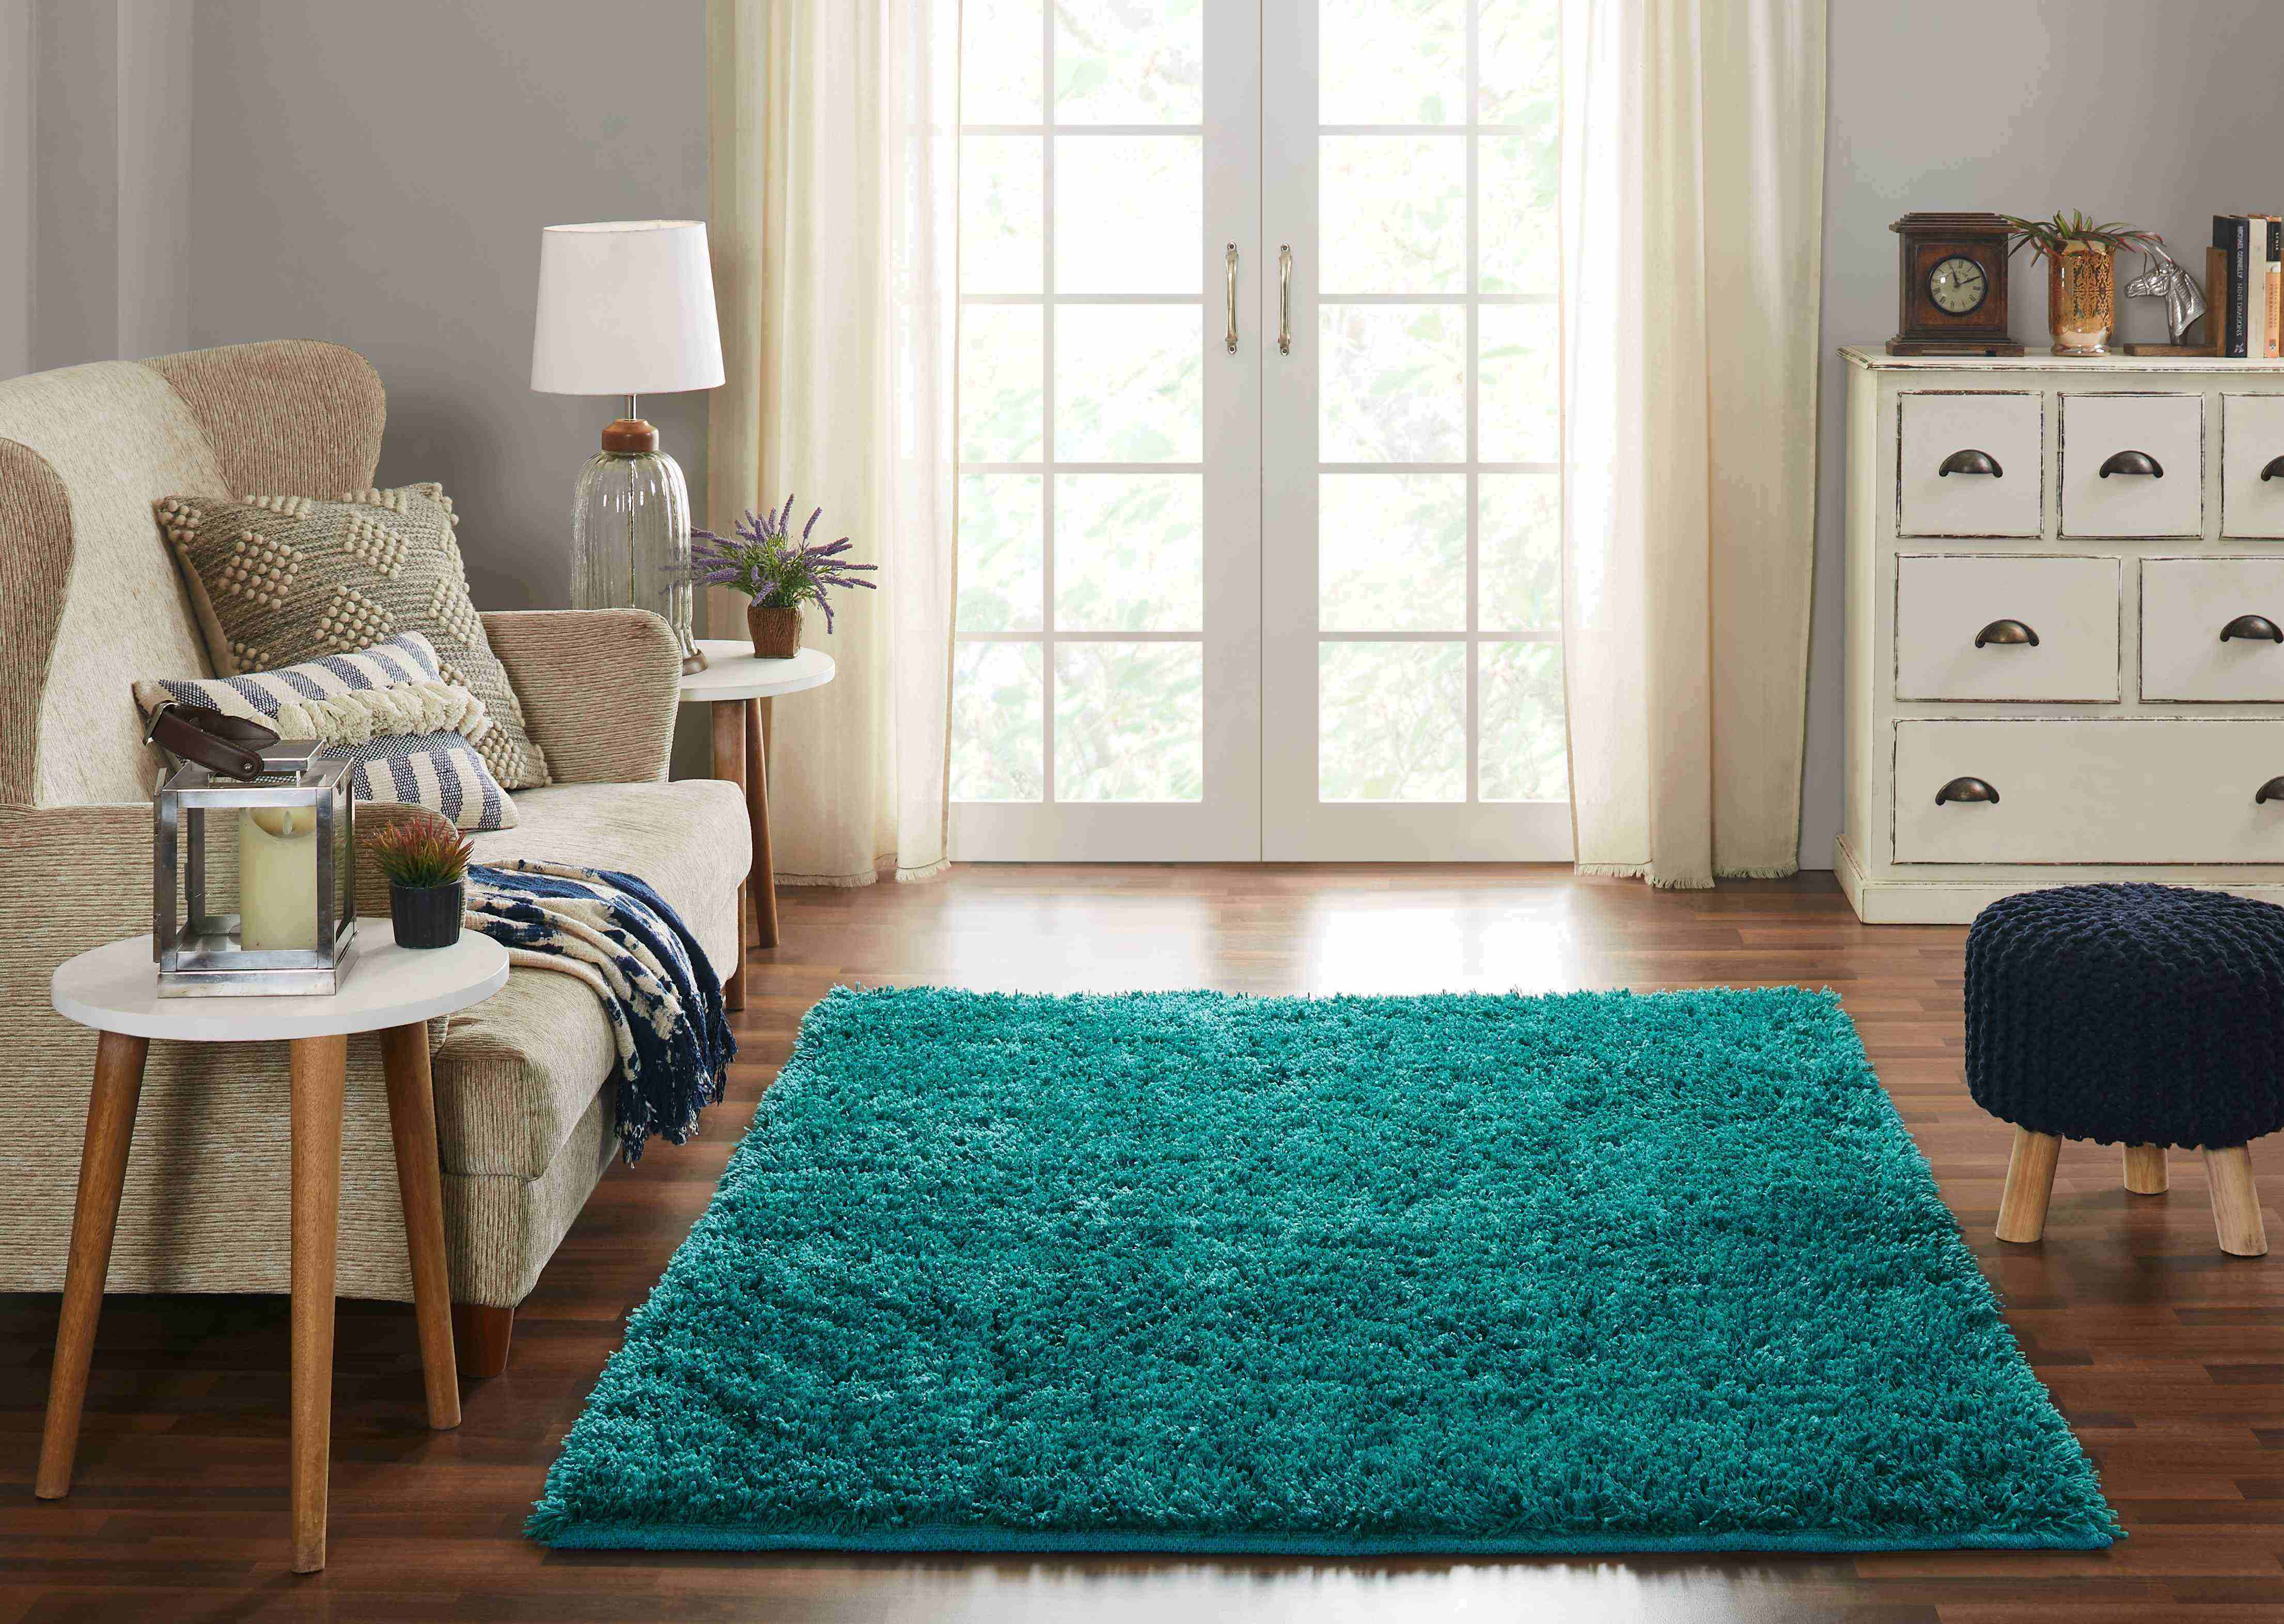 Chesapeake Microfiber Teal Shag Area